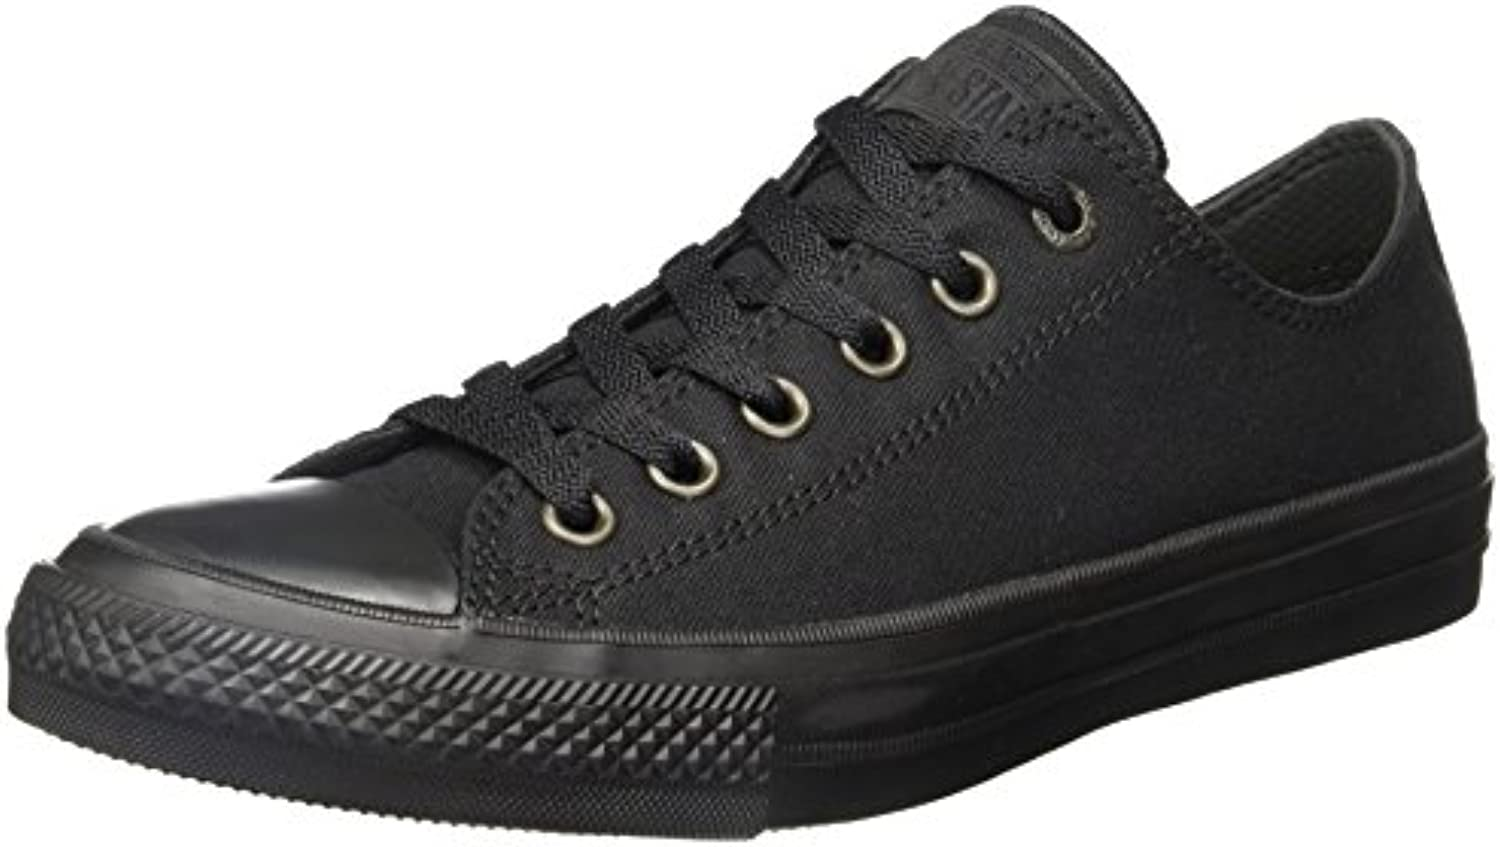 Converse Unisex-Erwachsene Chuck Taylor All Star II Low-Top